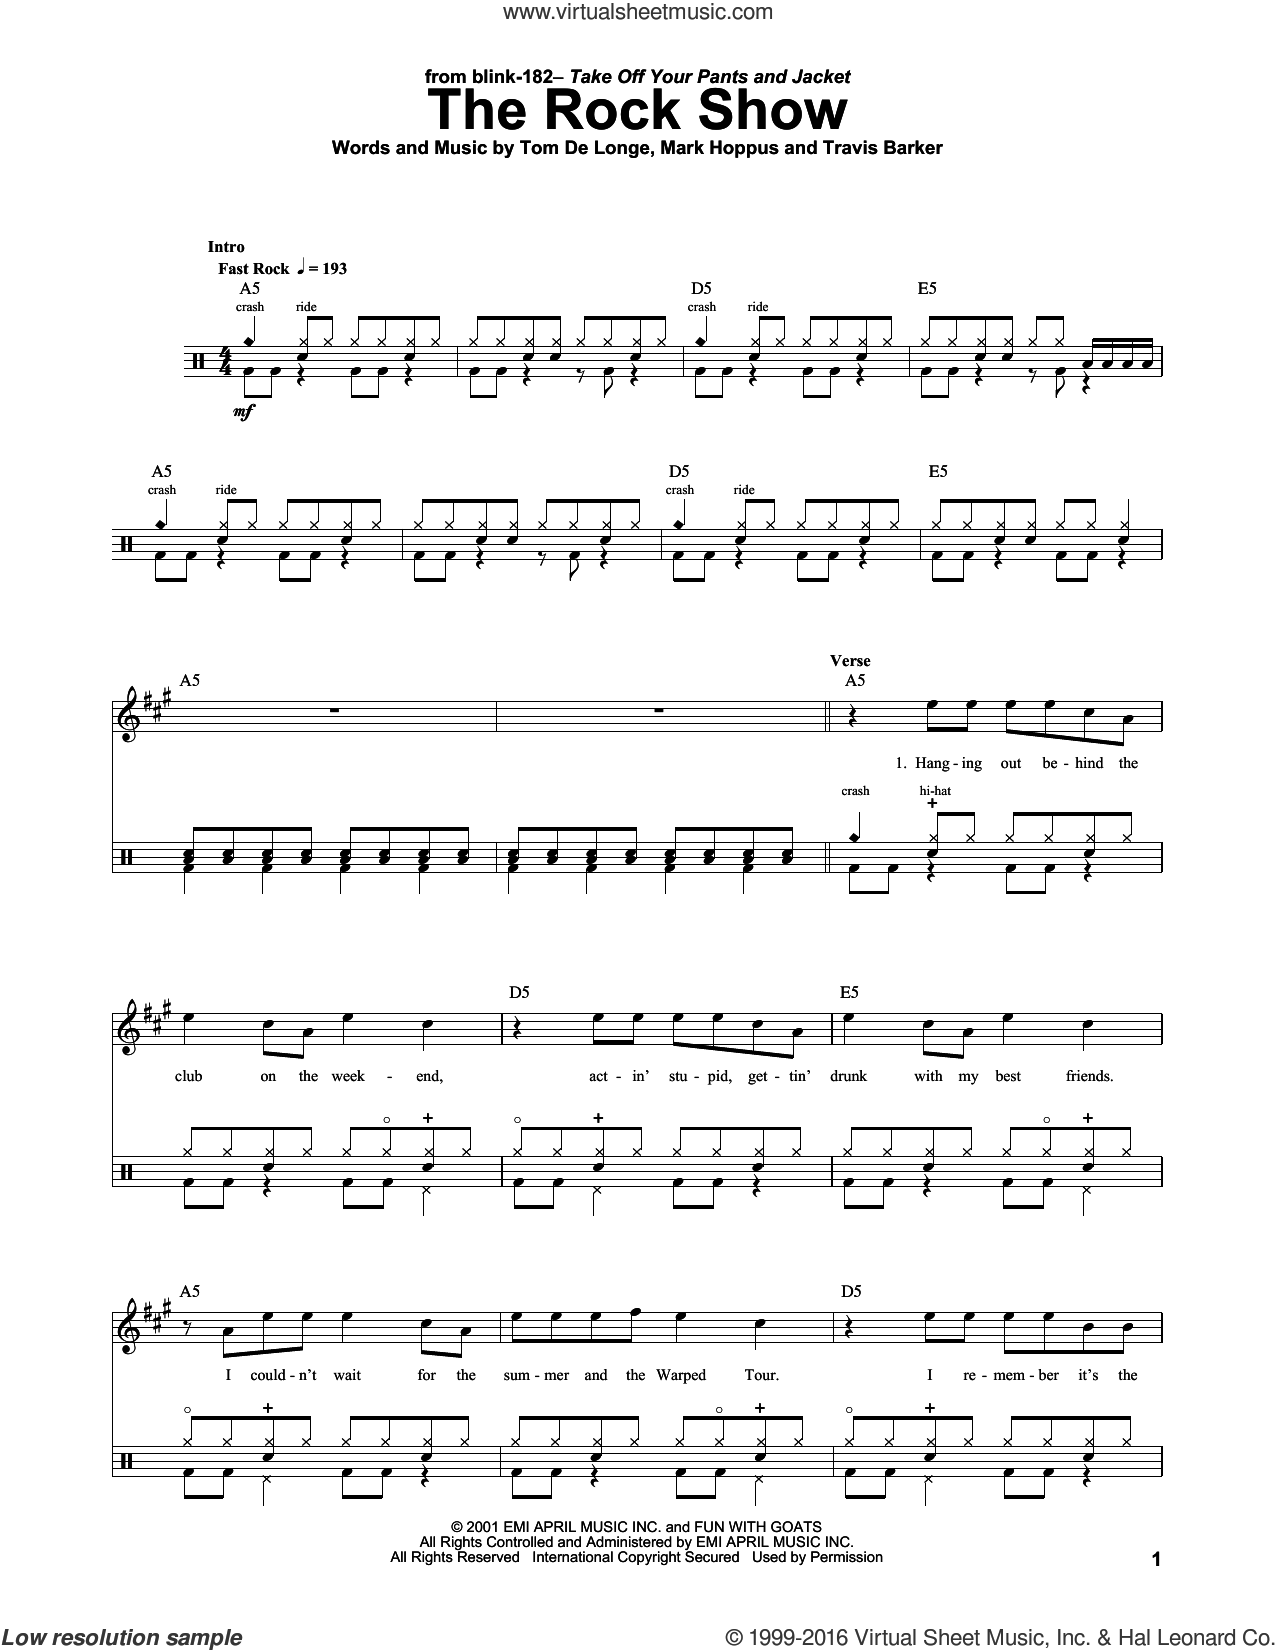 The Rock Show sheet music for drums by Blink 182, Mark Hoppus, Tom DeLonge and Travis Barker, intermediate skill level